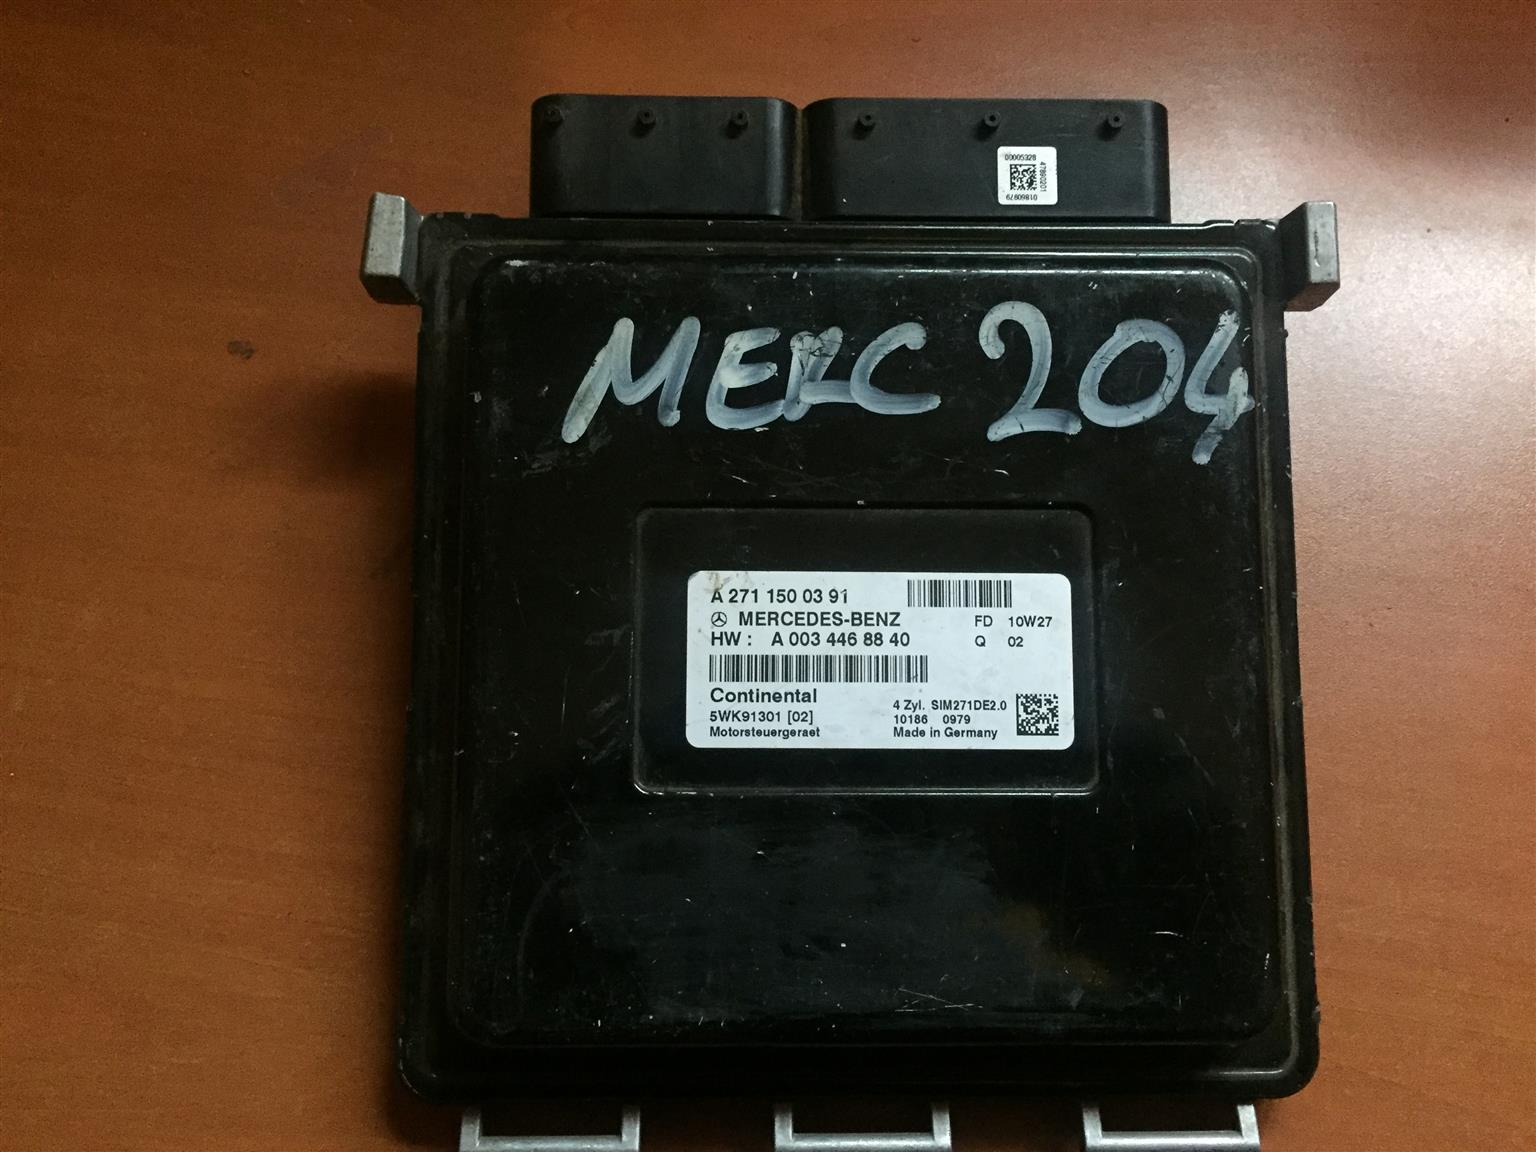 Mercedes Benz W140 computer box for sale